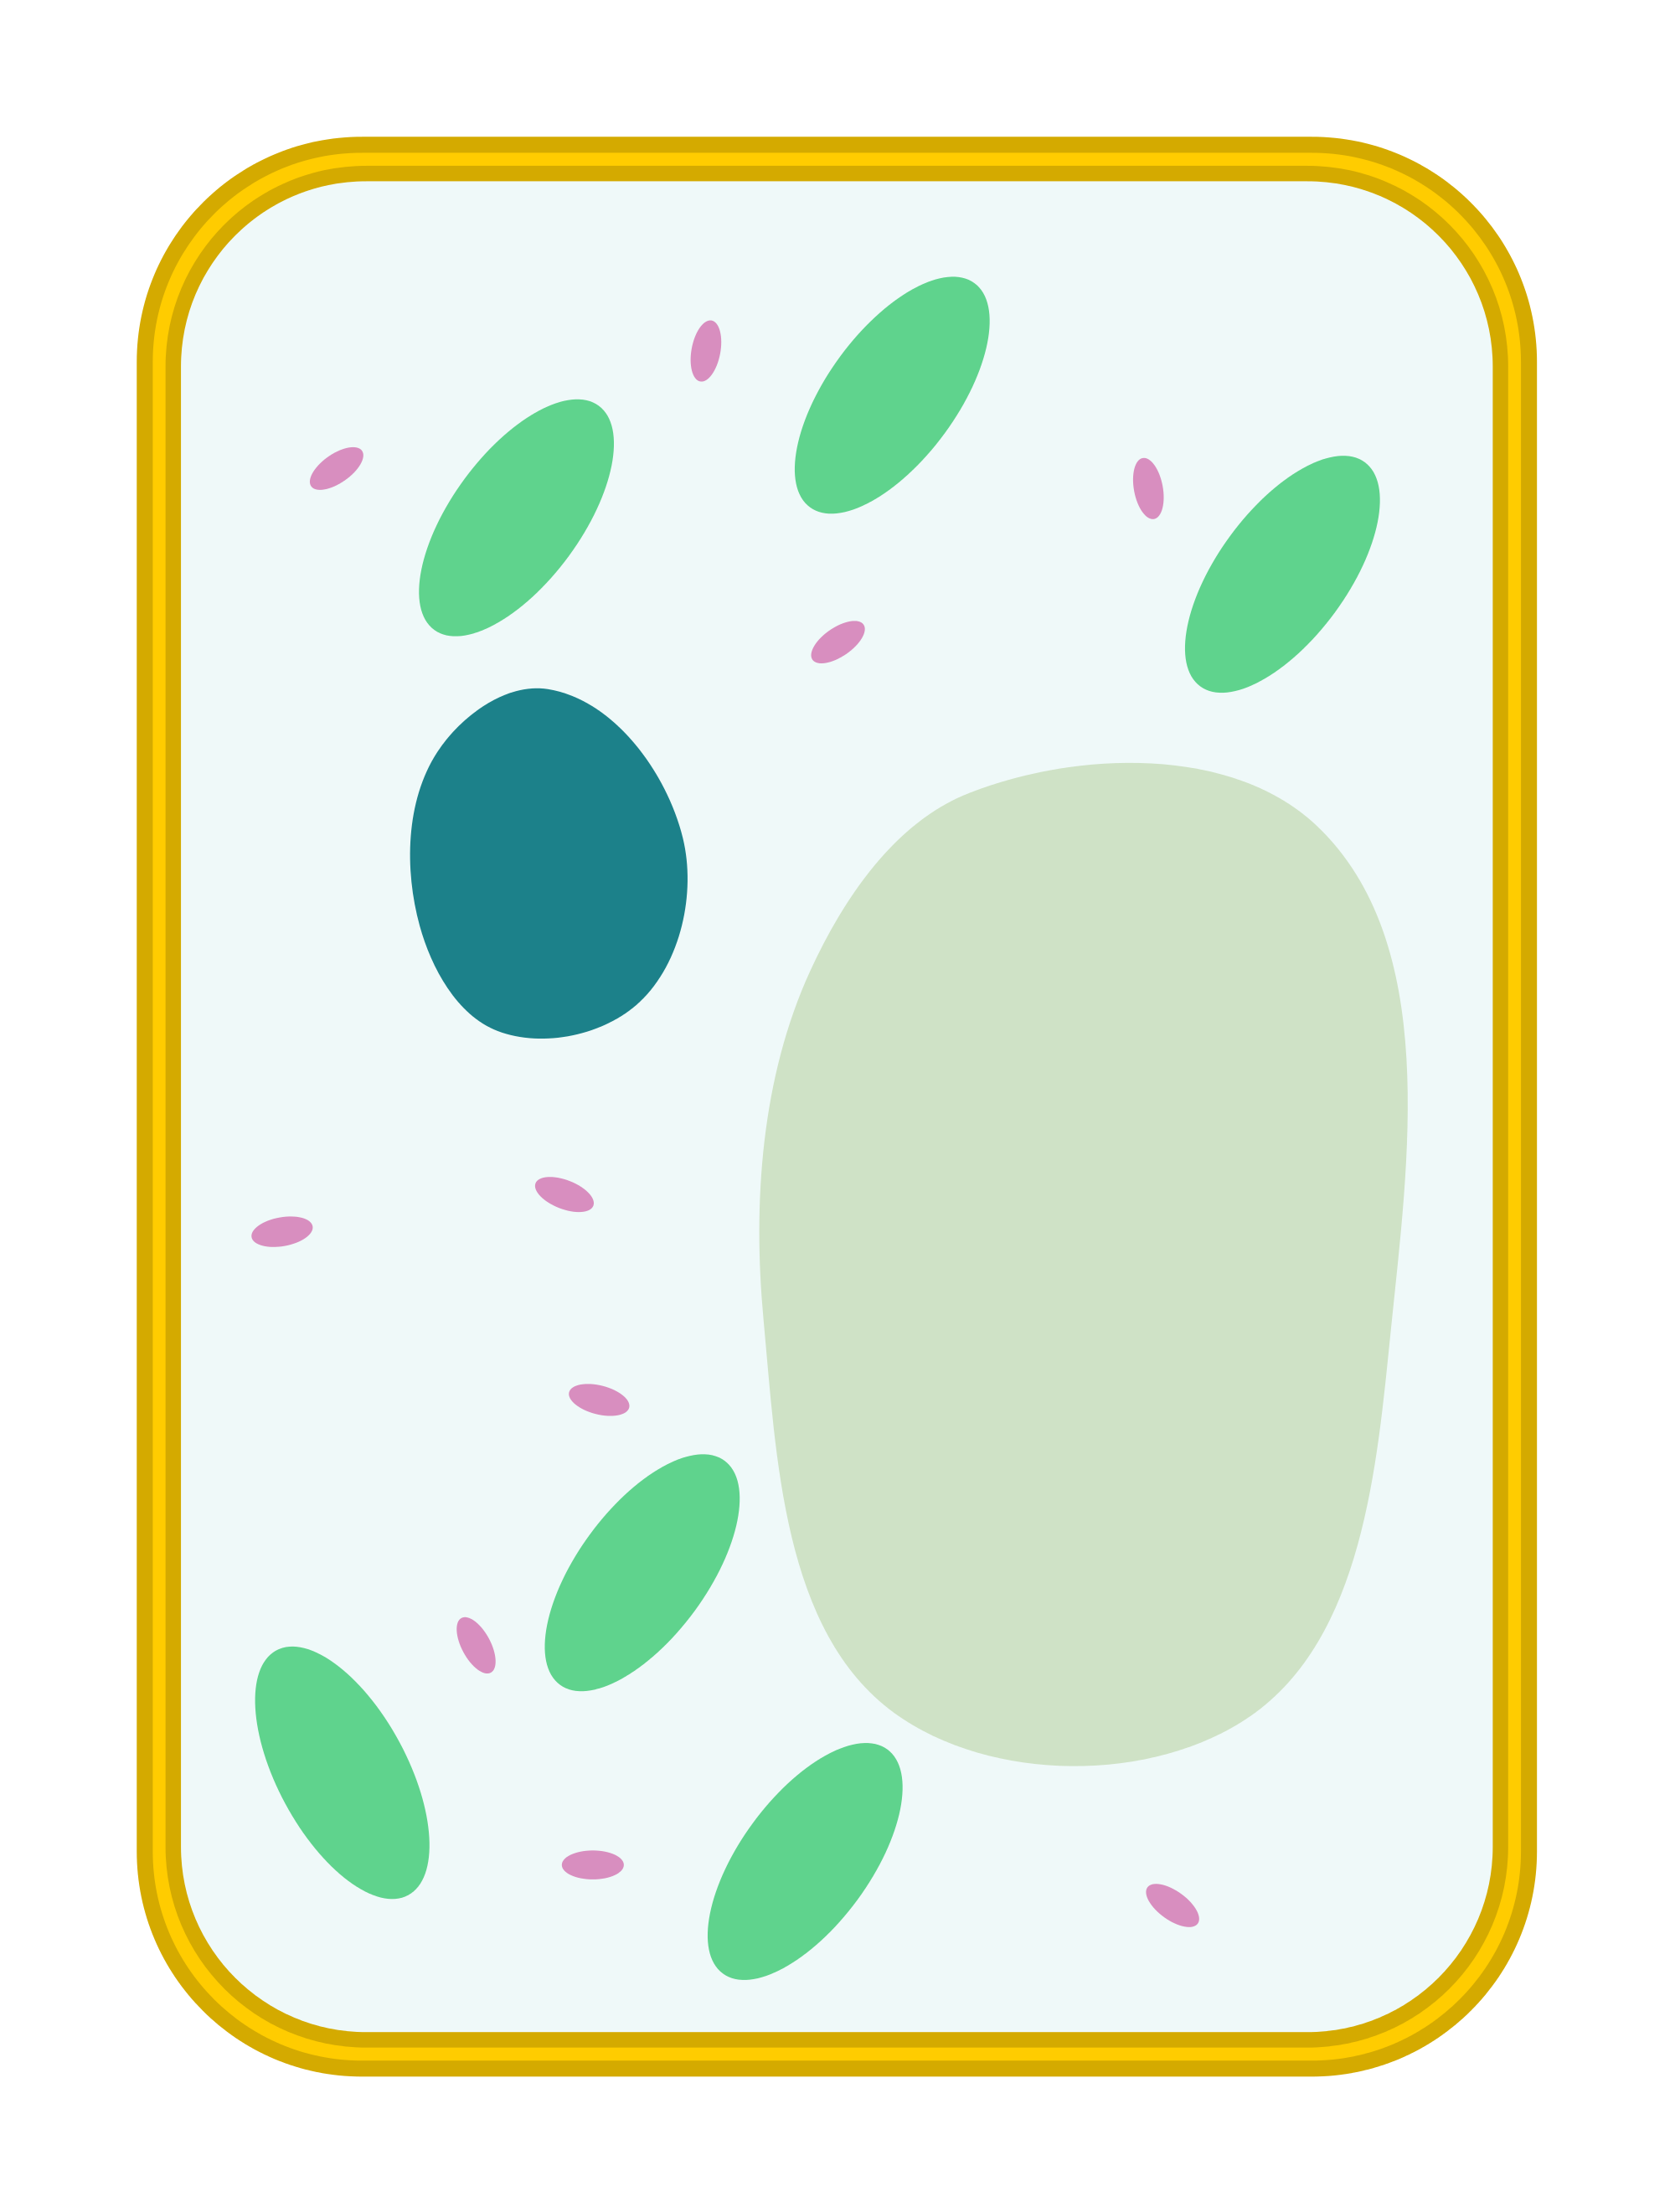 Cell clipart basic.  collection of plant